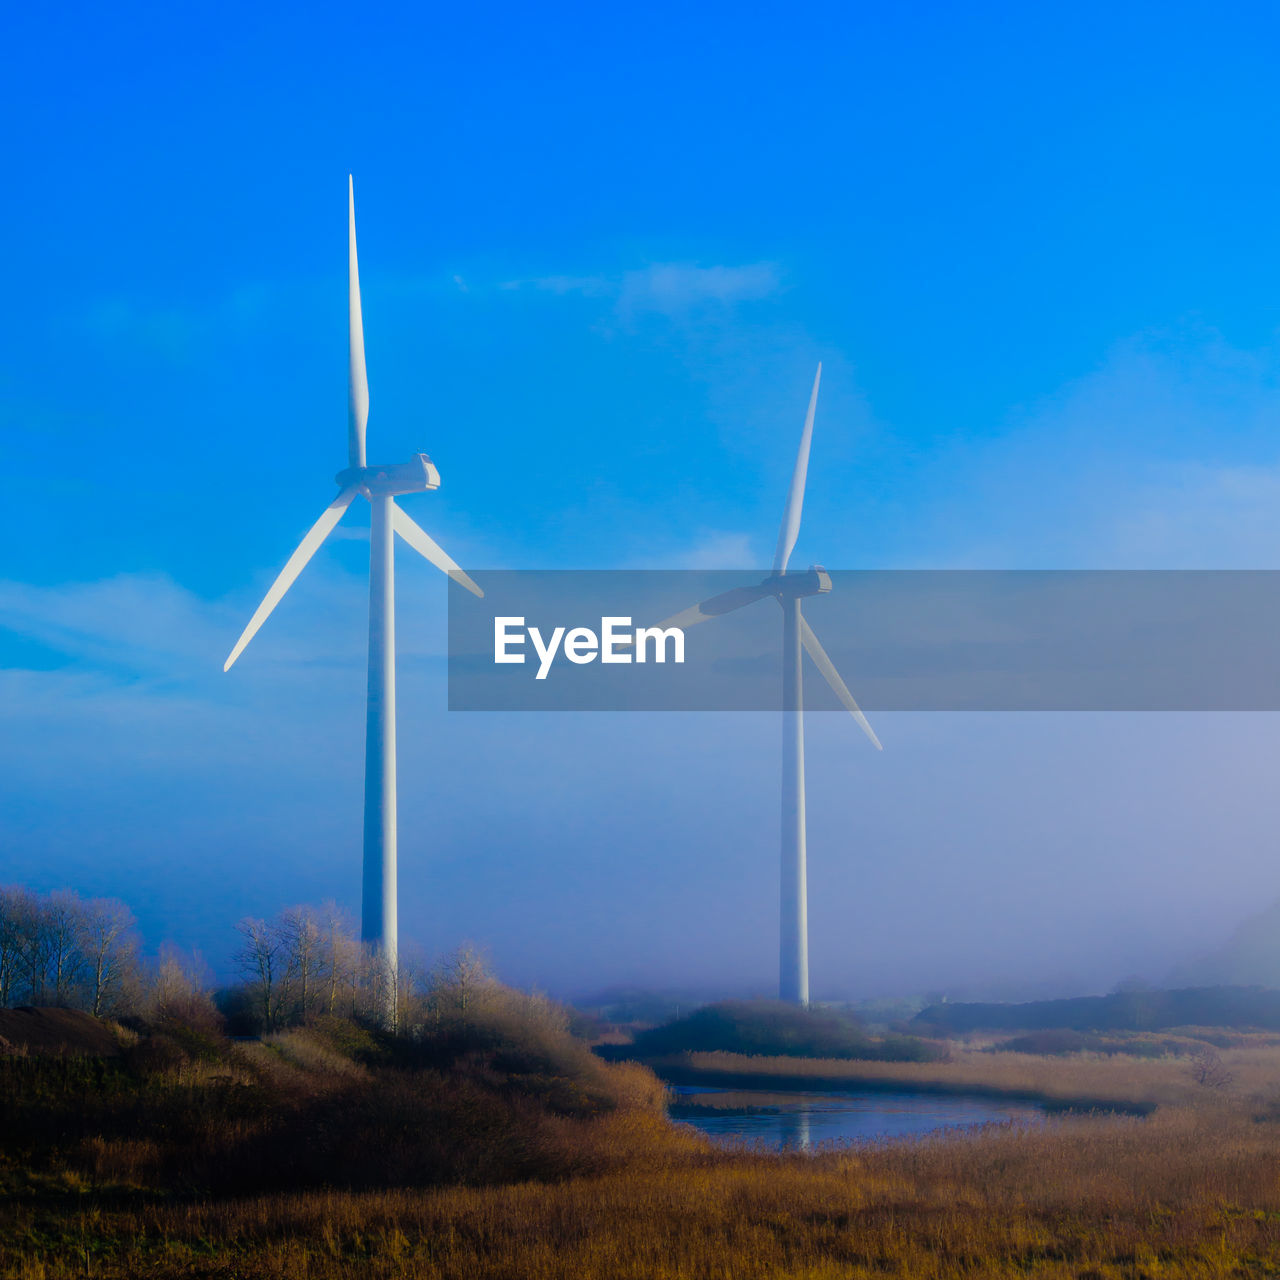 renewable energy, alternative energy, wind turbine, turbine, environmental conservation, fuel and power generation, wind power, environment, sky, landscape, field, blue, nature, land, technology, rural scene, beauty in nature, no people, non-urban scene, scenics - nature, outdoors, sustainable resources, power in nature